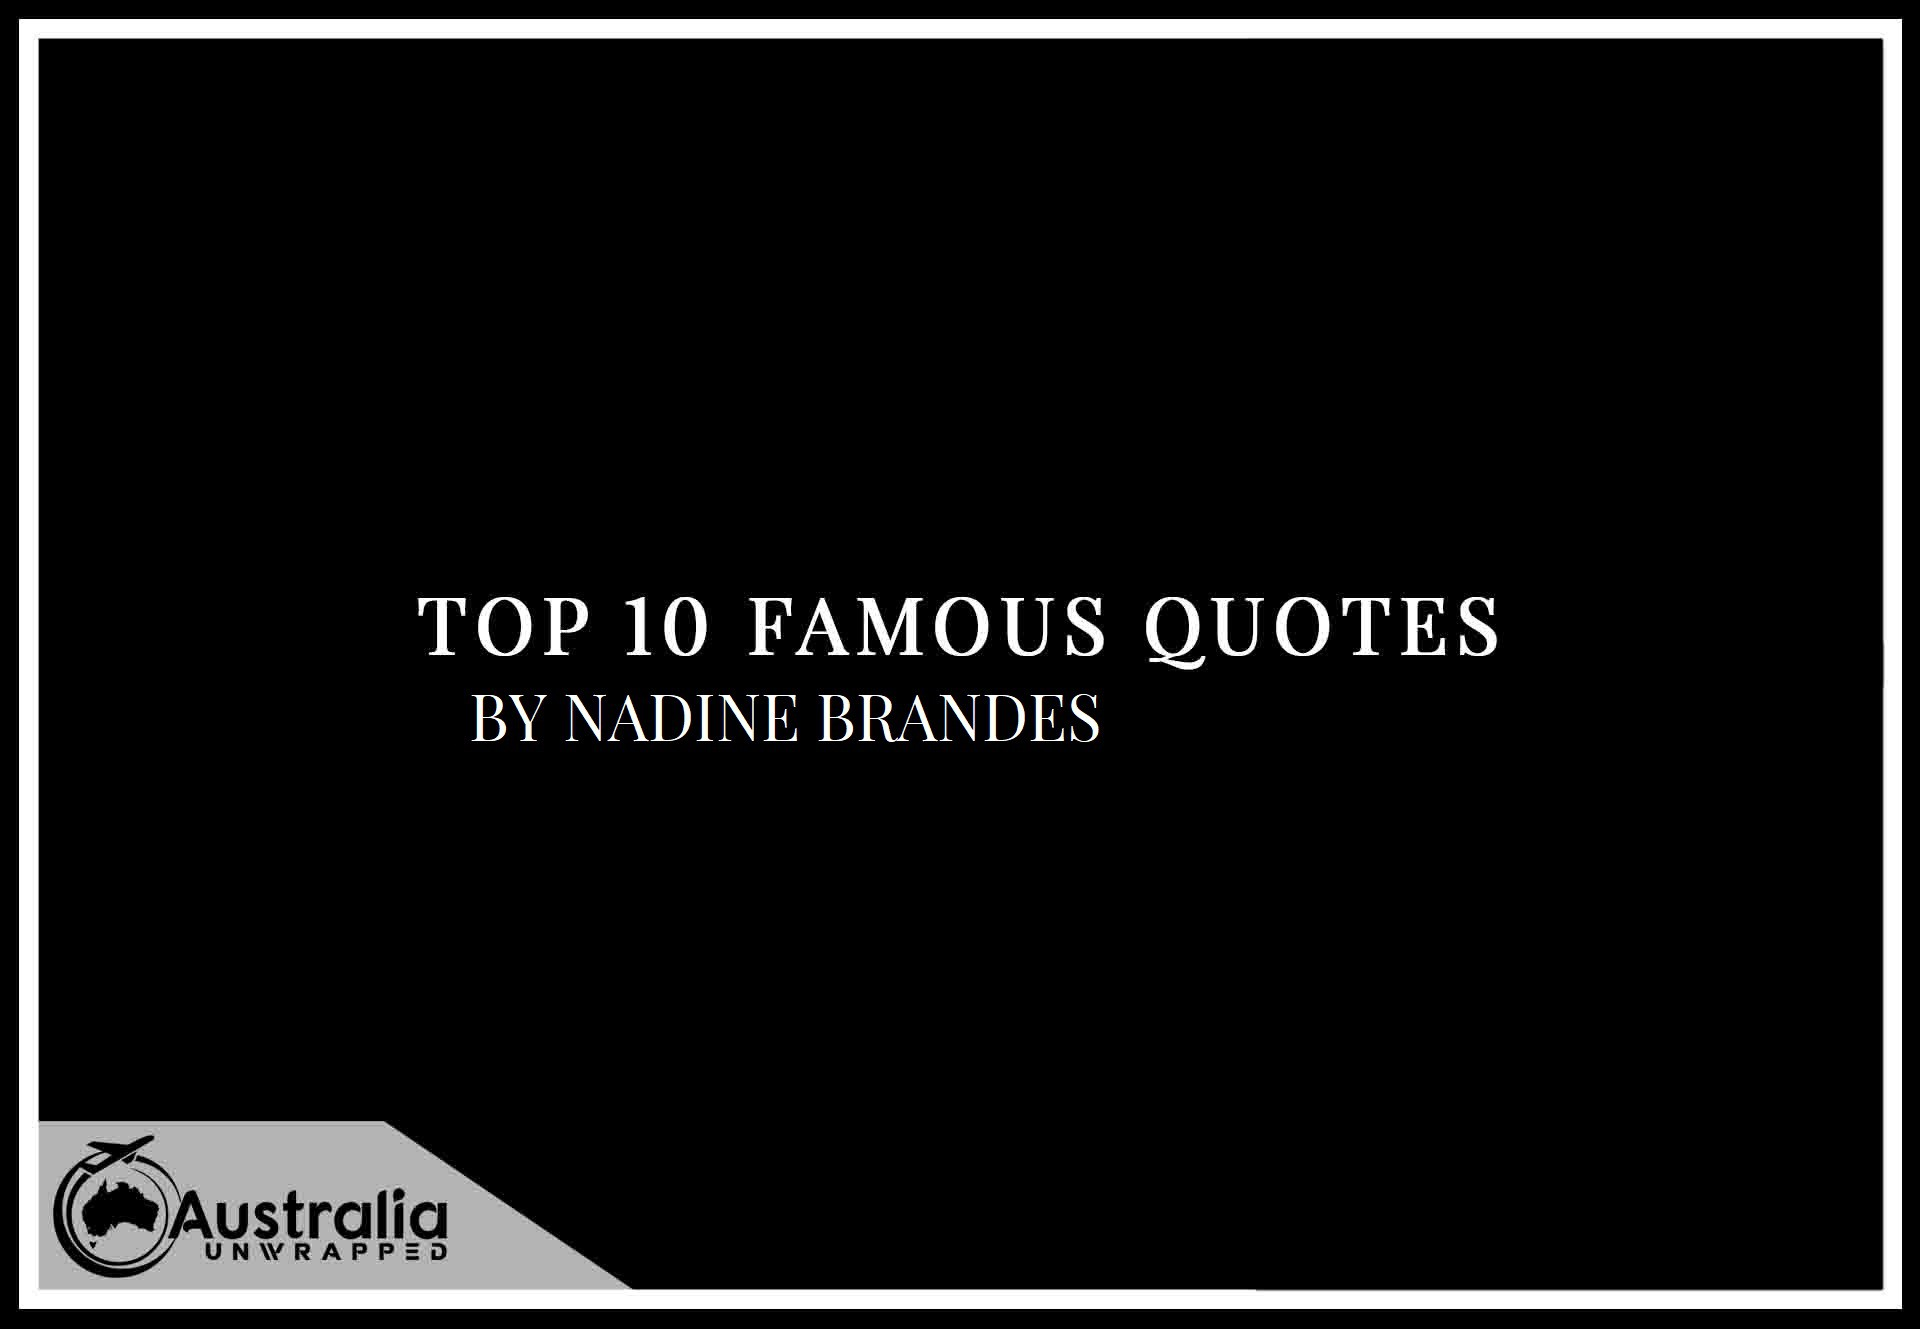 Top 10 Famous Quotes by Author Nadine Brandes